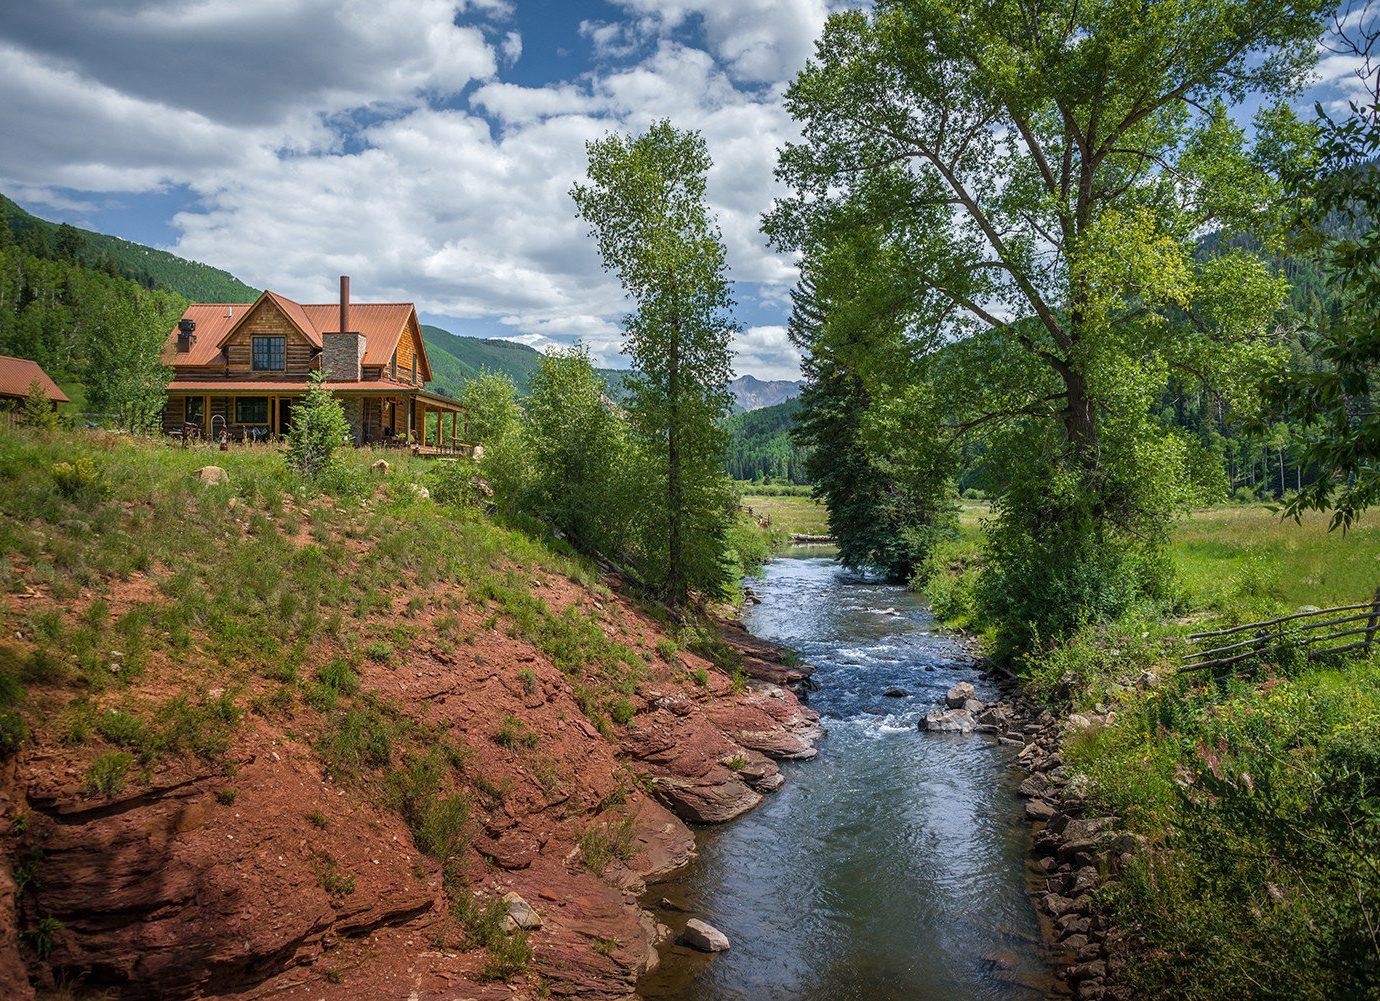 Glamping Outdoors + Adventure Trip Ideas tree outdoor Nature landform River wilderness water body of water rural area waterway stream valley landscape narrow path autumn mountain flower trail hillside surrounded lush